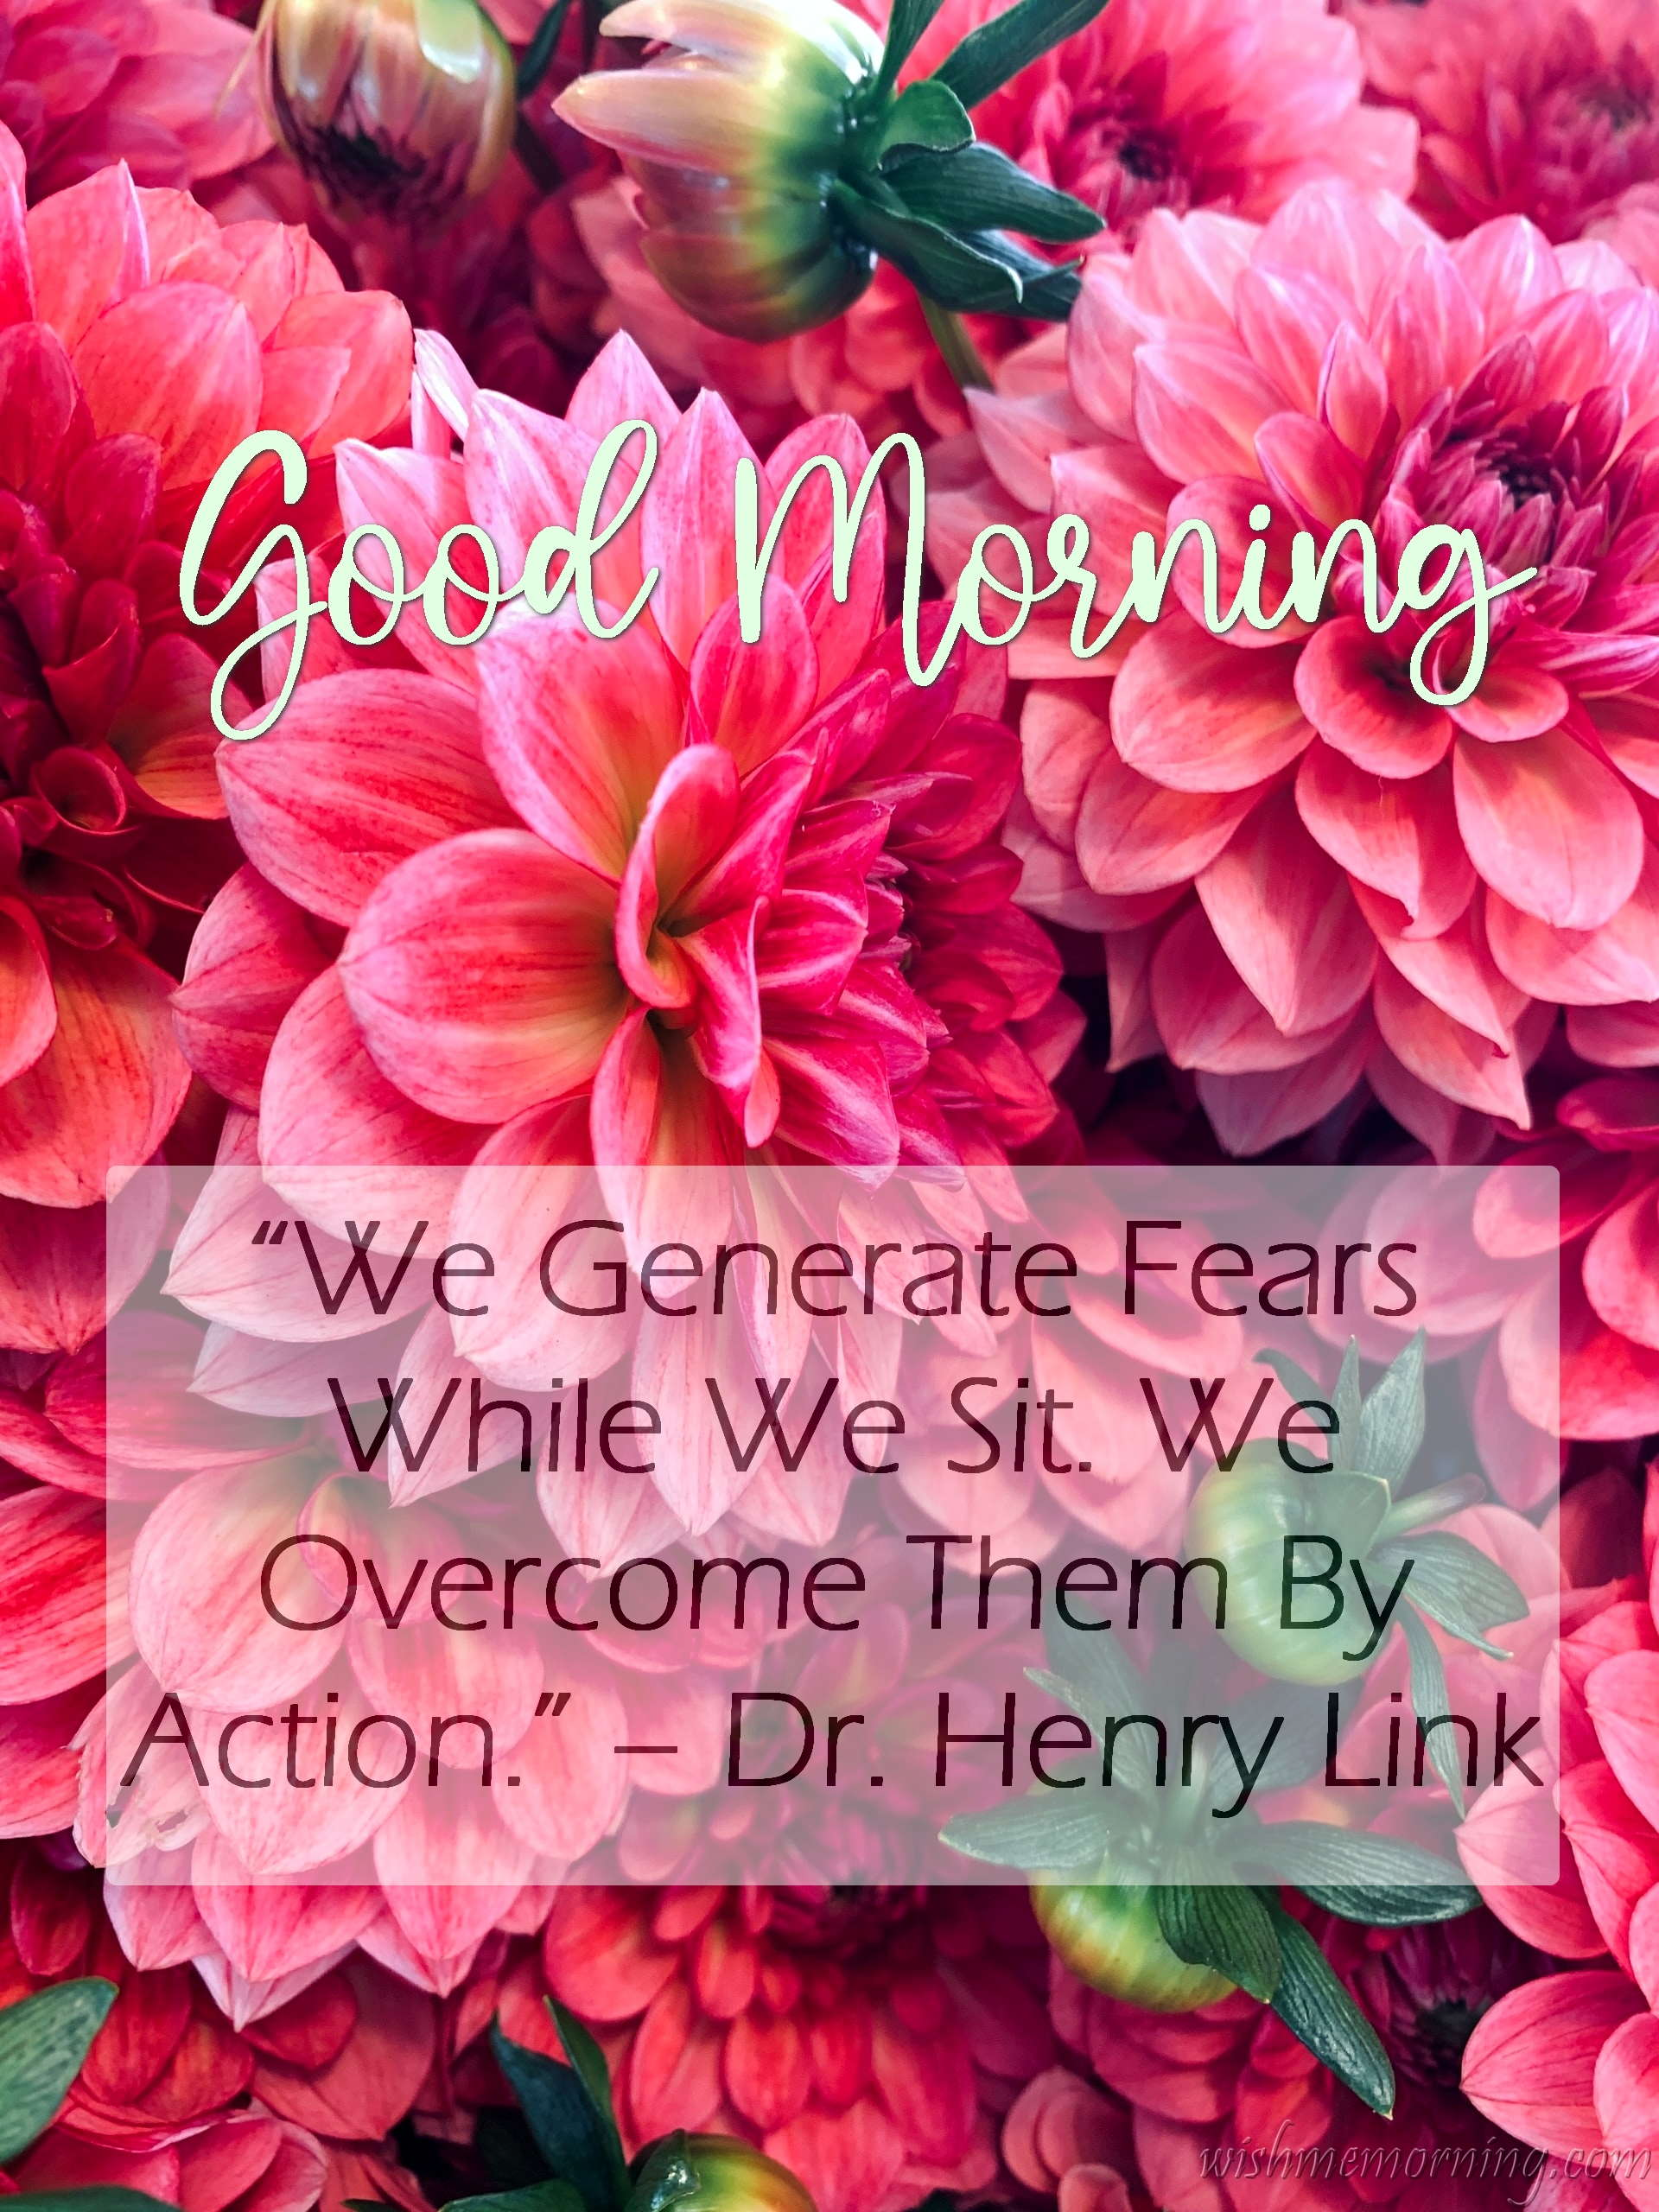 Good Morning Quote Dr. Henry Link Plants Background